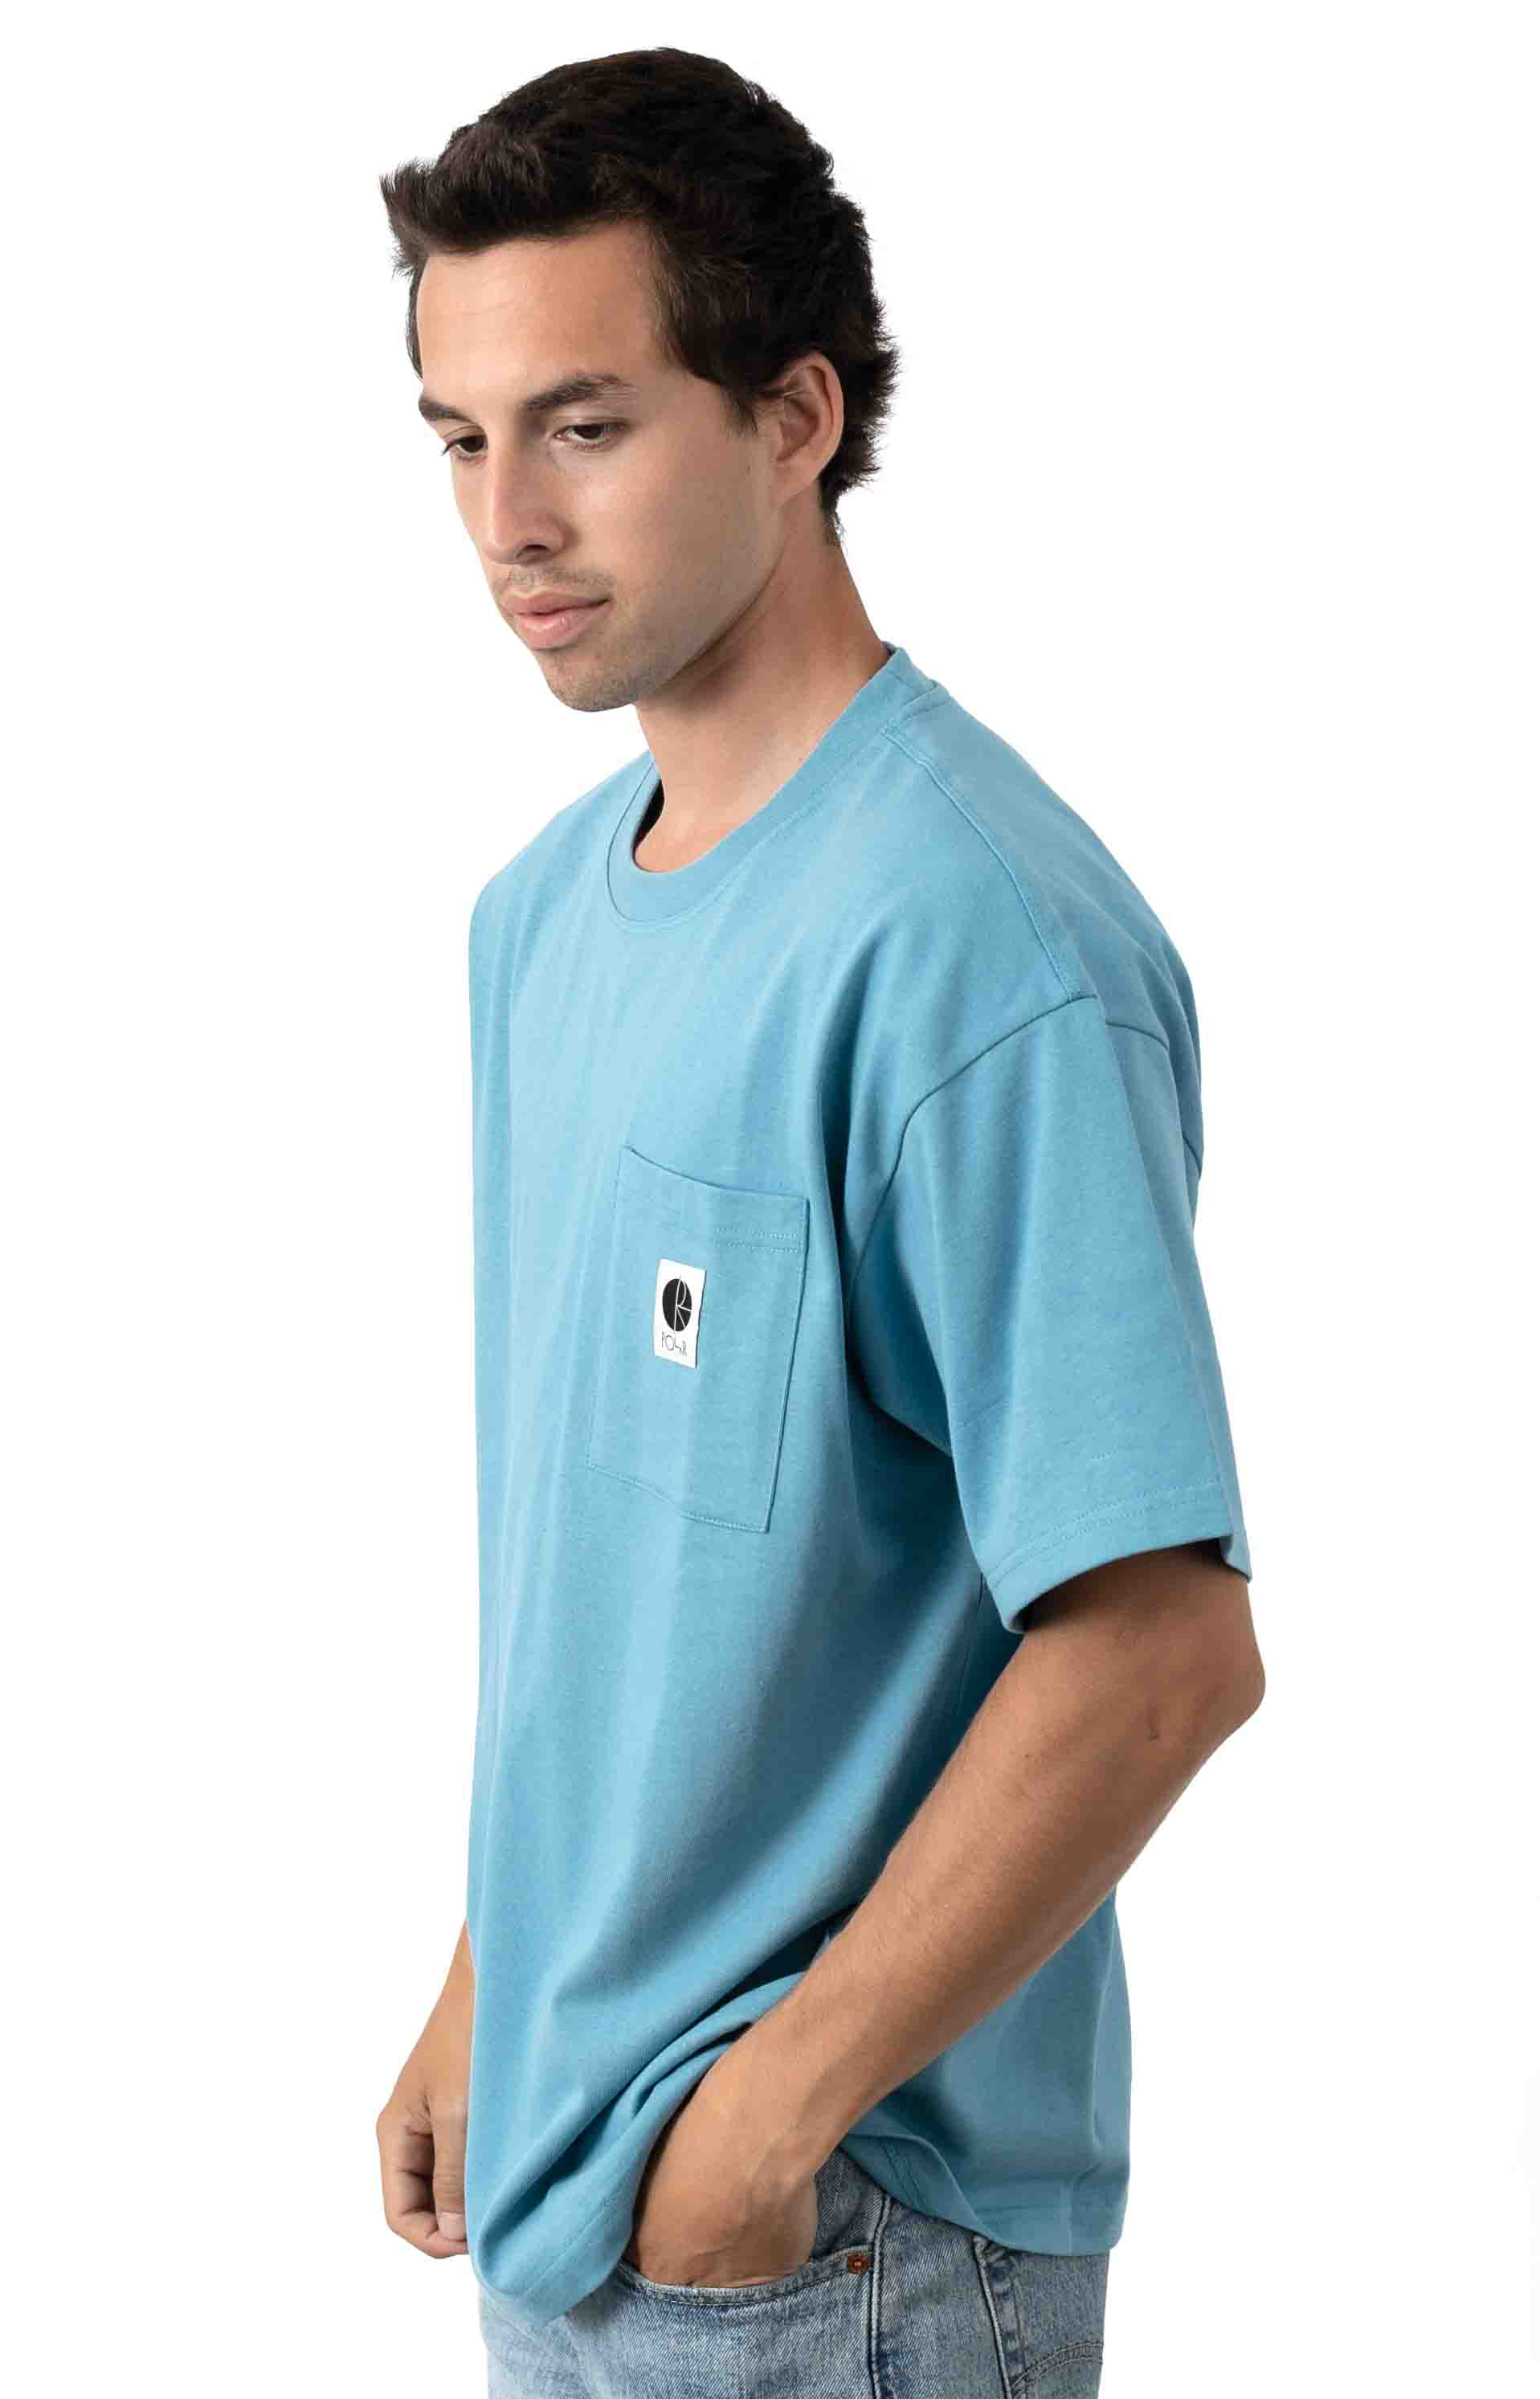 Pocket T-Shirt - Blue 2